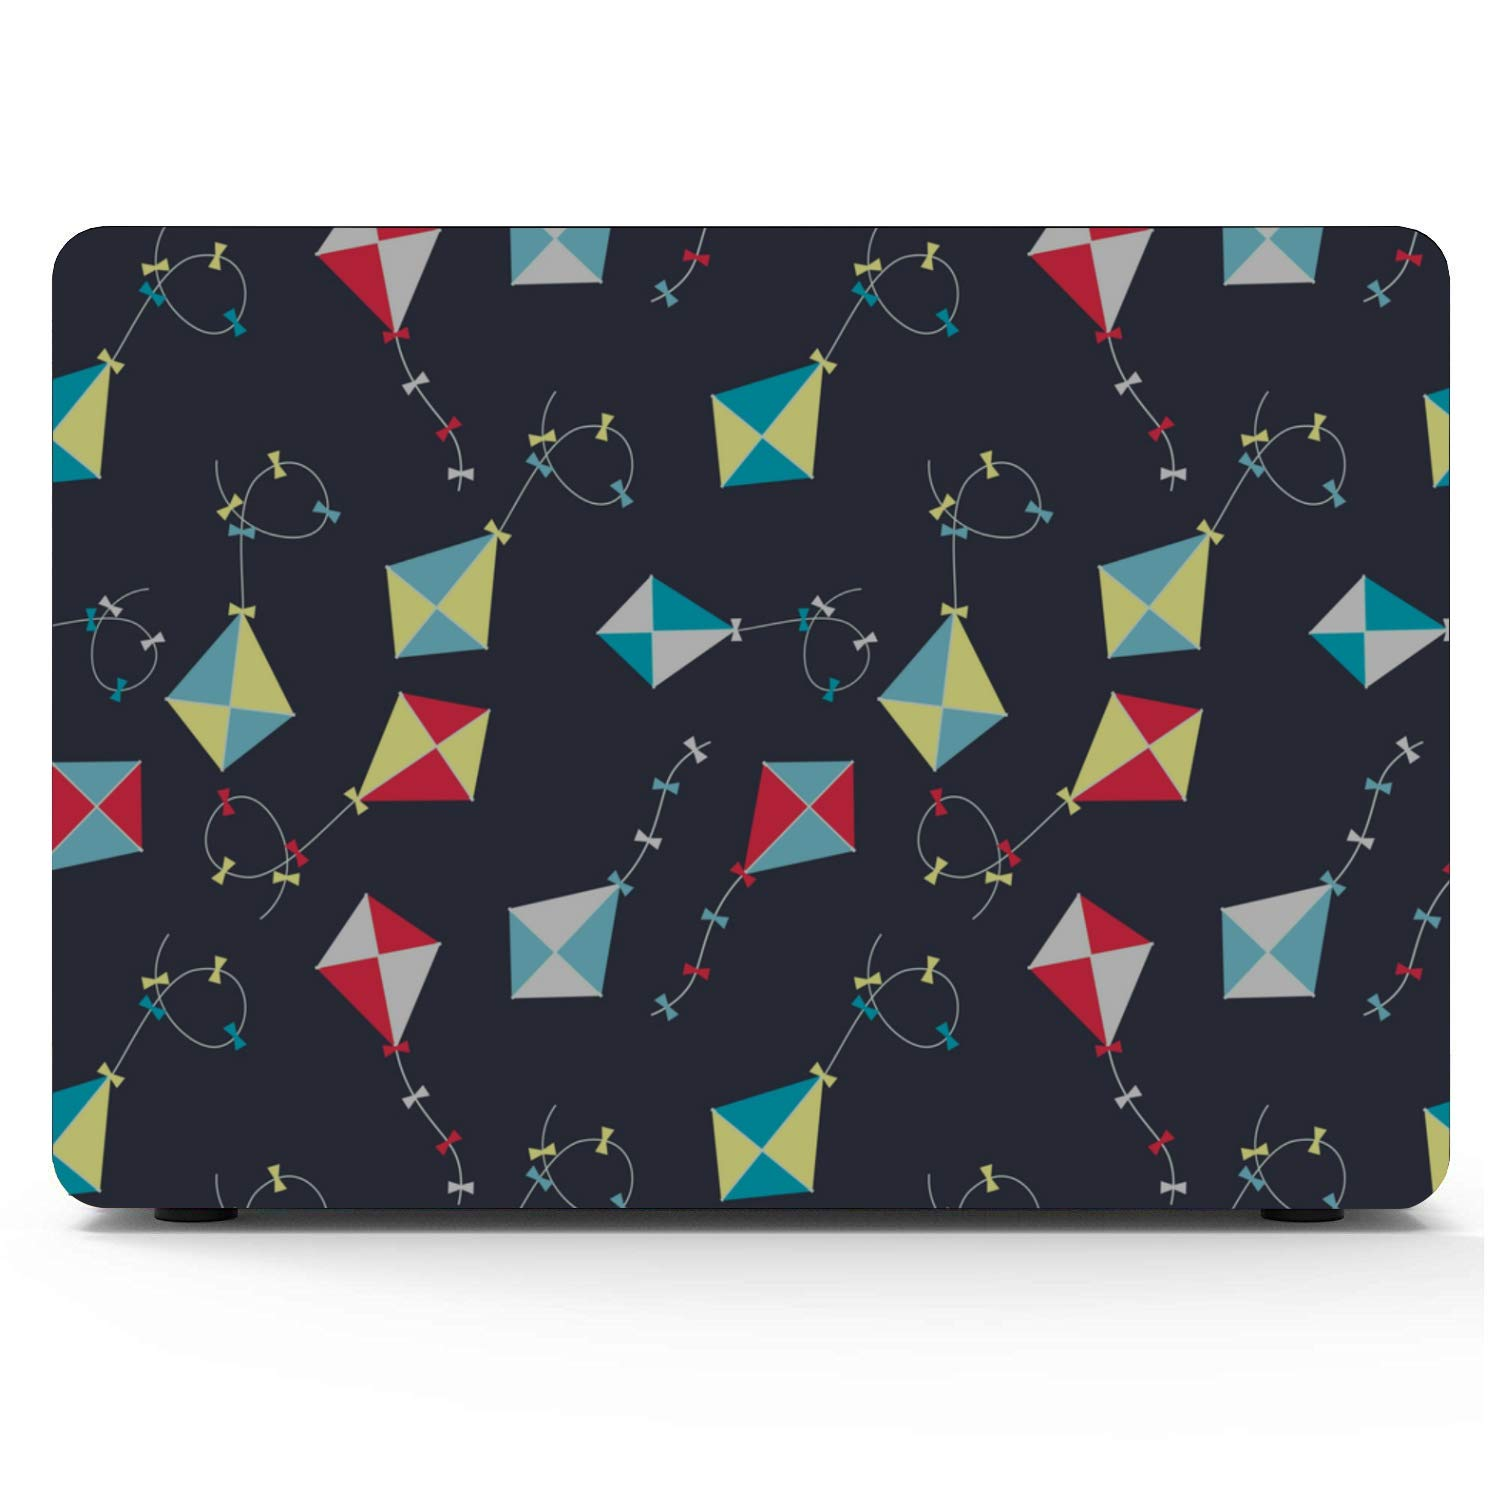 MacBook Air 13in Case Spring Children Play Game Toy Kite Plastic Hard Shell Compatible Mac Air 11 Pro 13 15 Cover MacBook Air 13 Protection for MacBook 2016-2019 Version